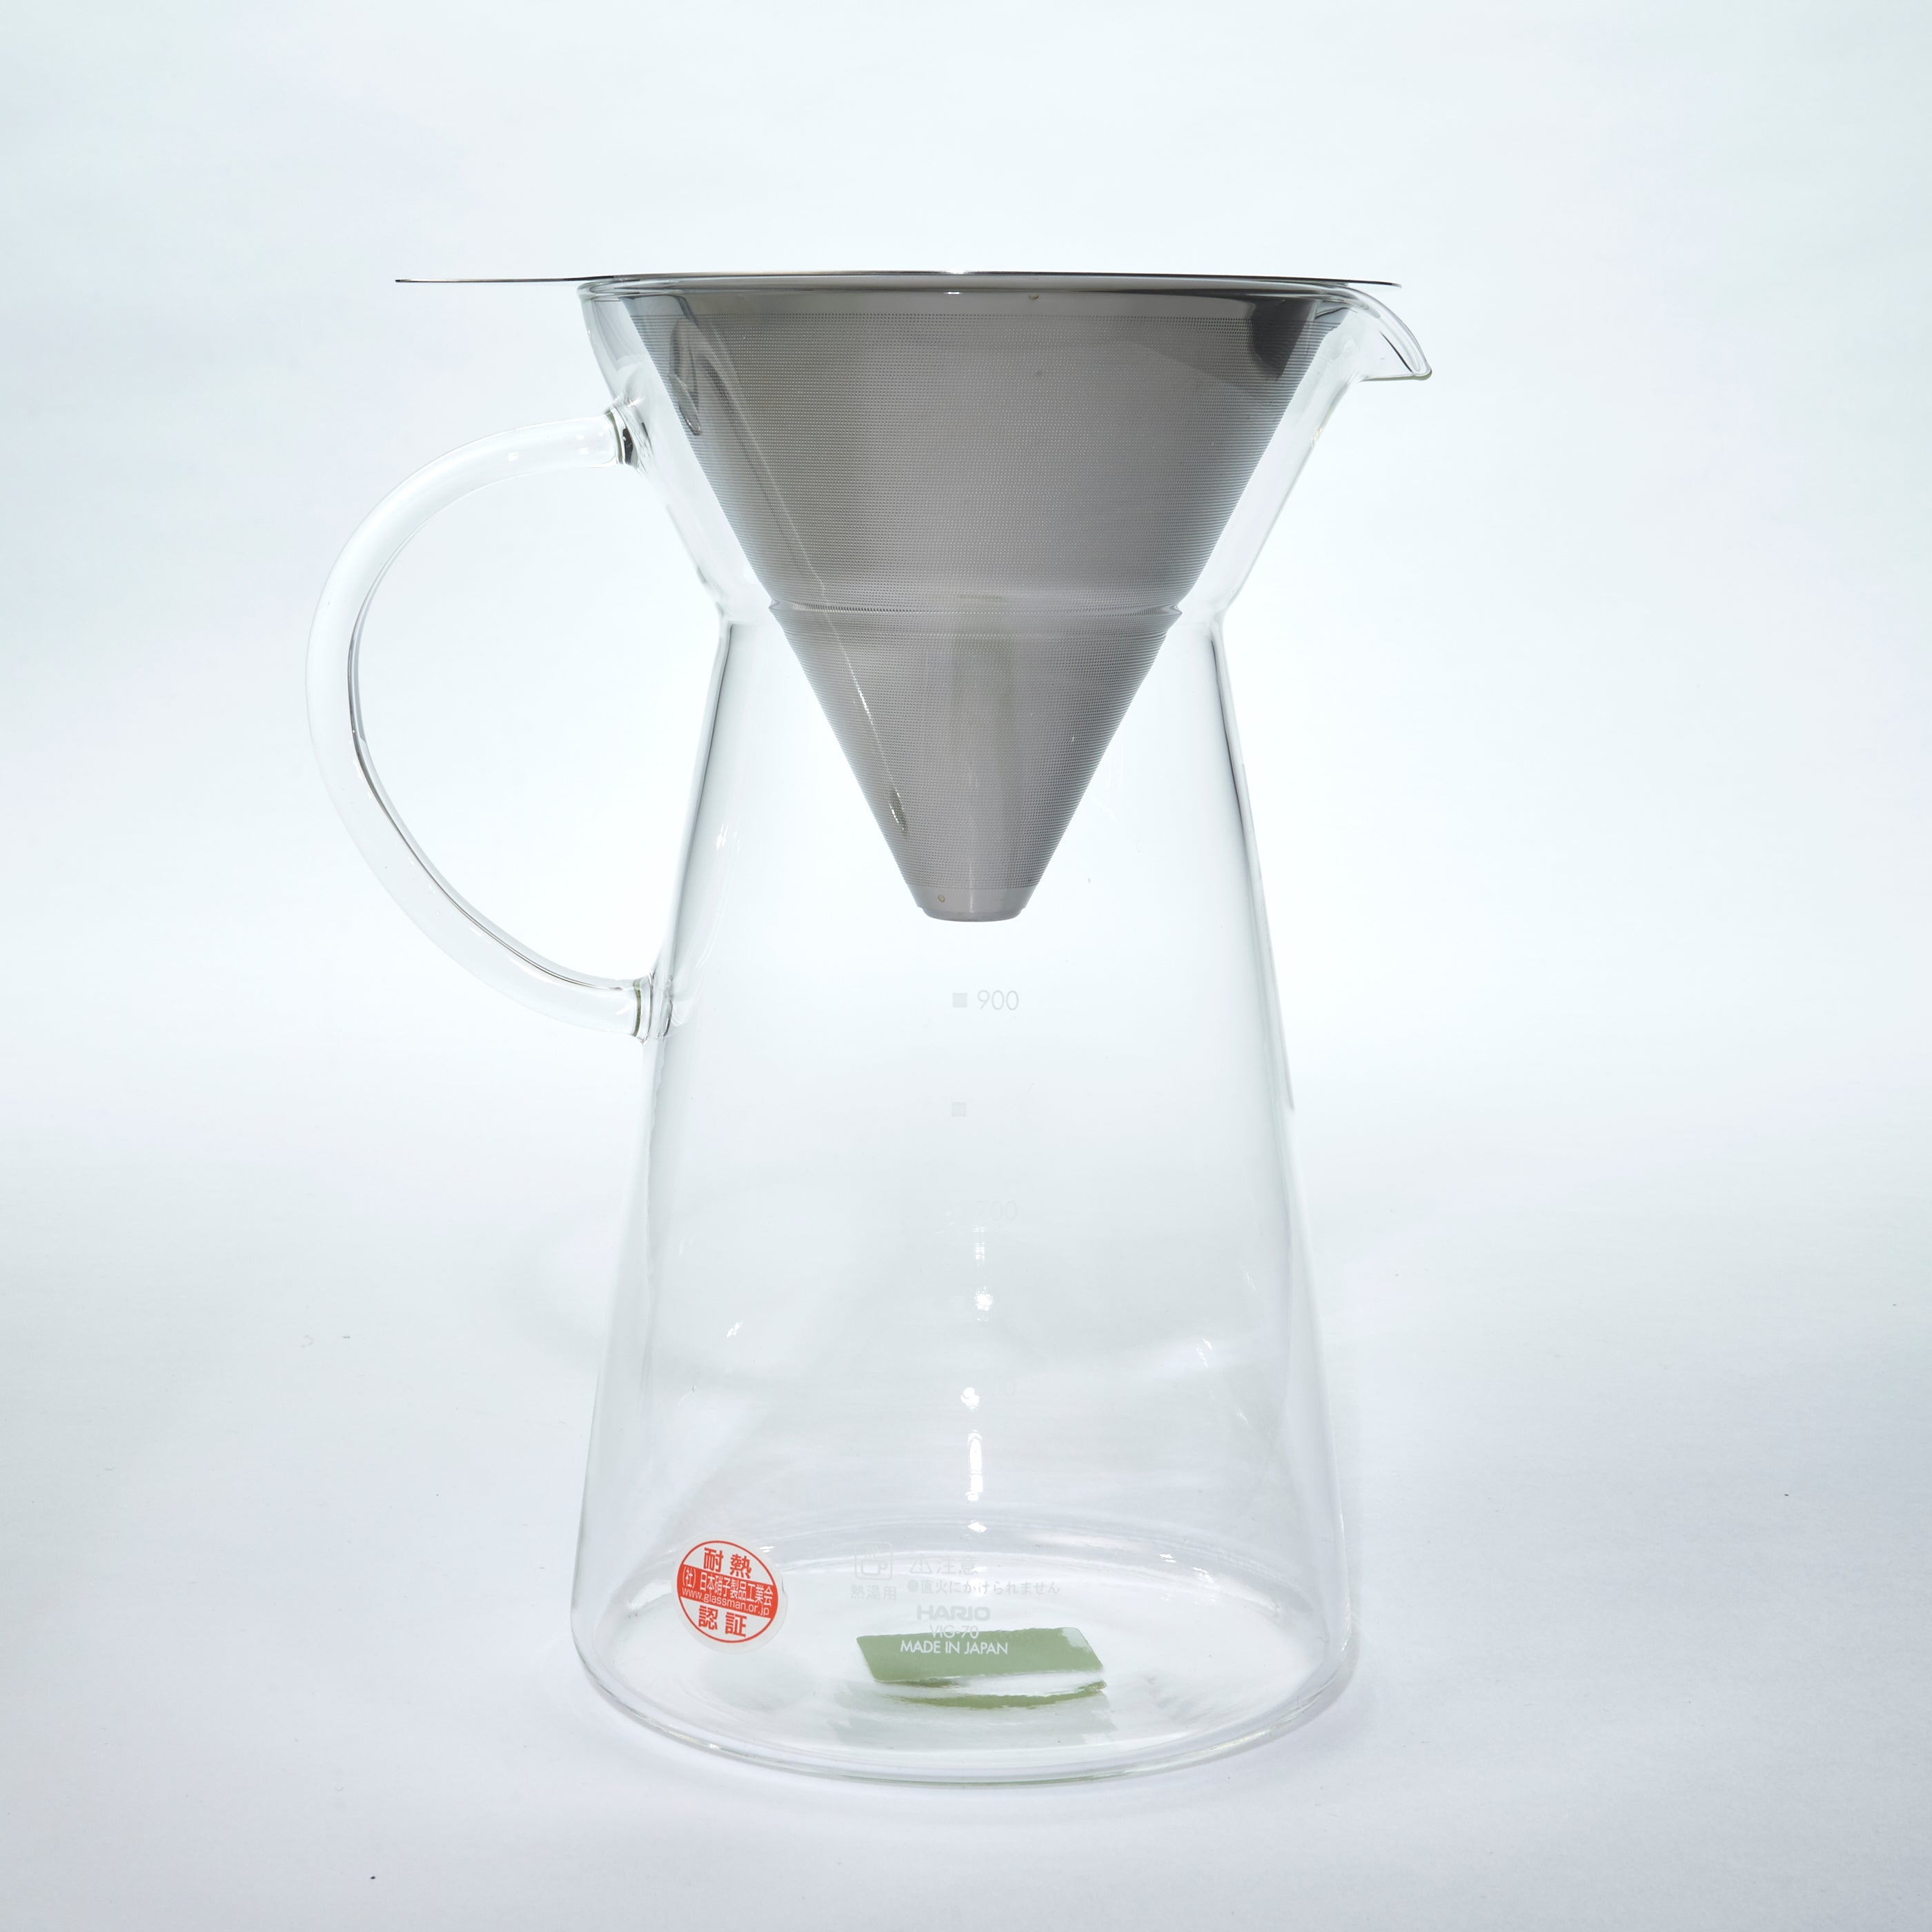 Hario stainless steel mesh filter All glass coffee drip decanter 700ml